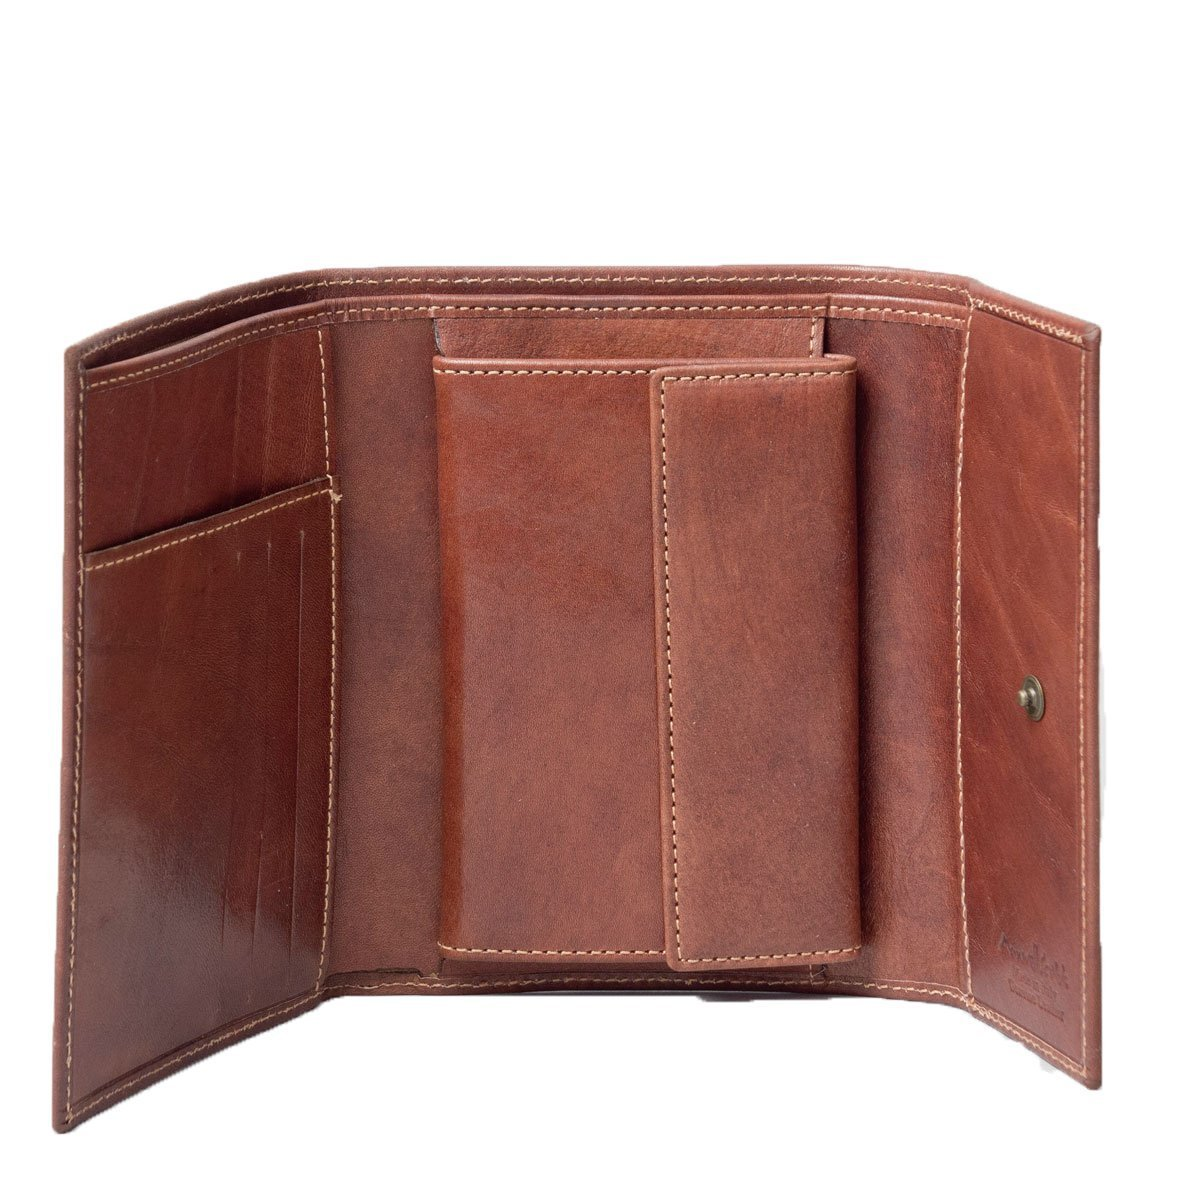 Maxwell Scott Luxury Tan Womens Leather Purse - Large (The Ponticelli)